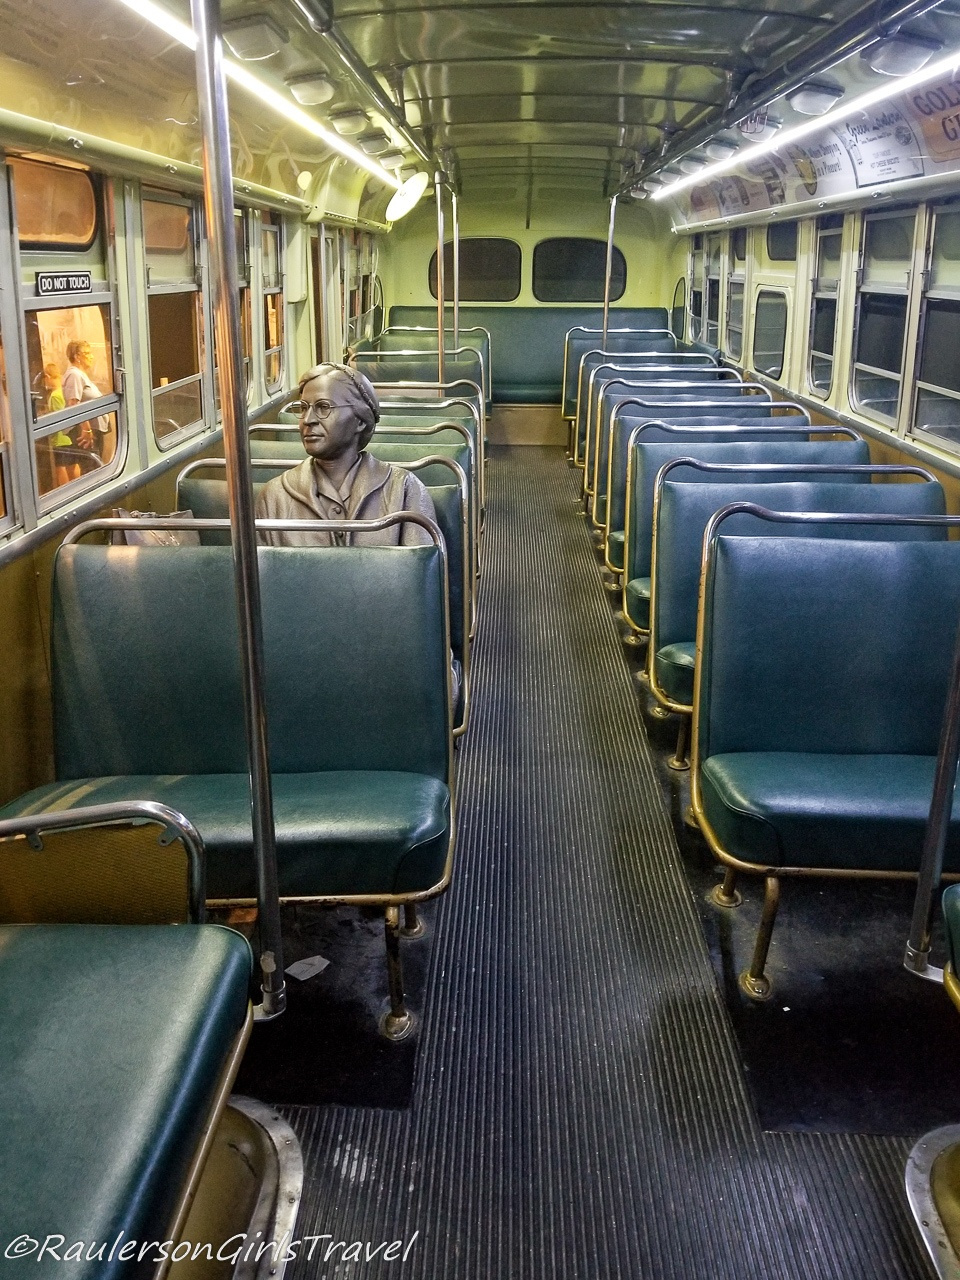 Replica of Rosa Parks on the Bus - NCR Museum